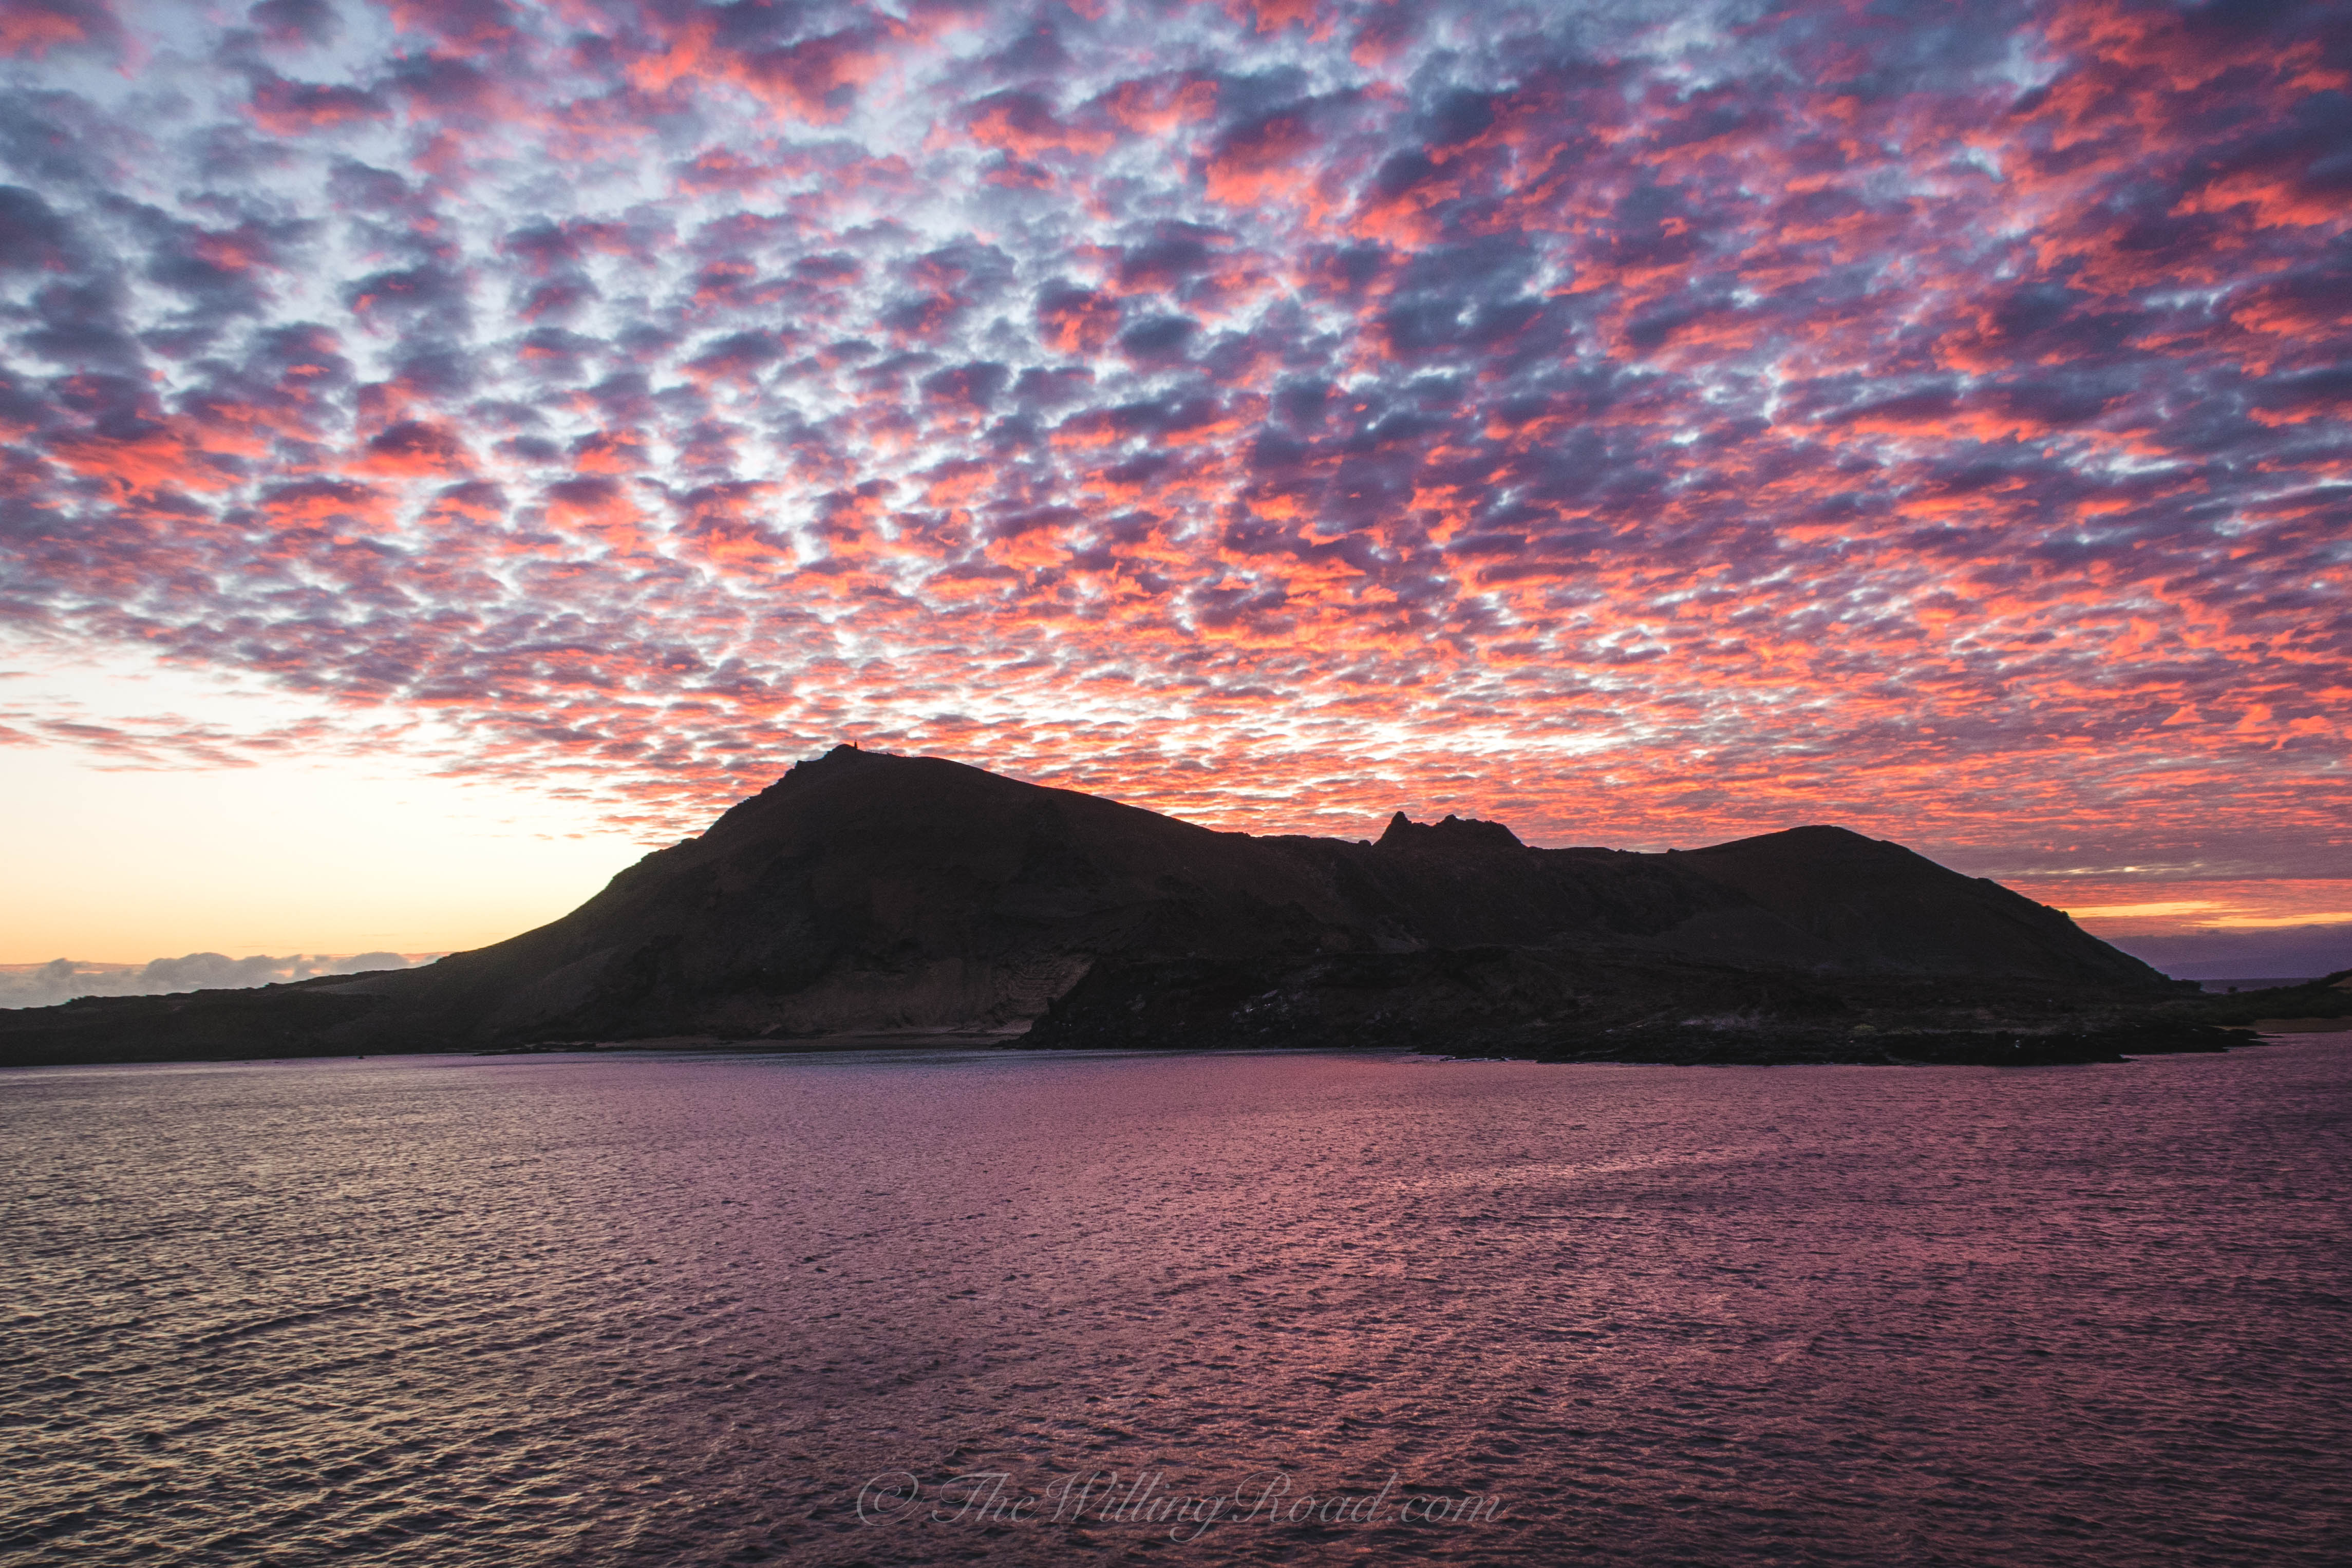 Go to the Galapagos and see the sun rise